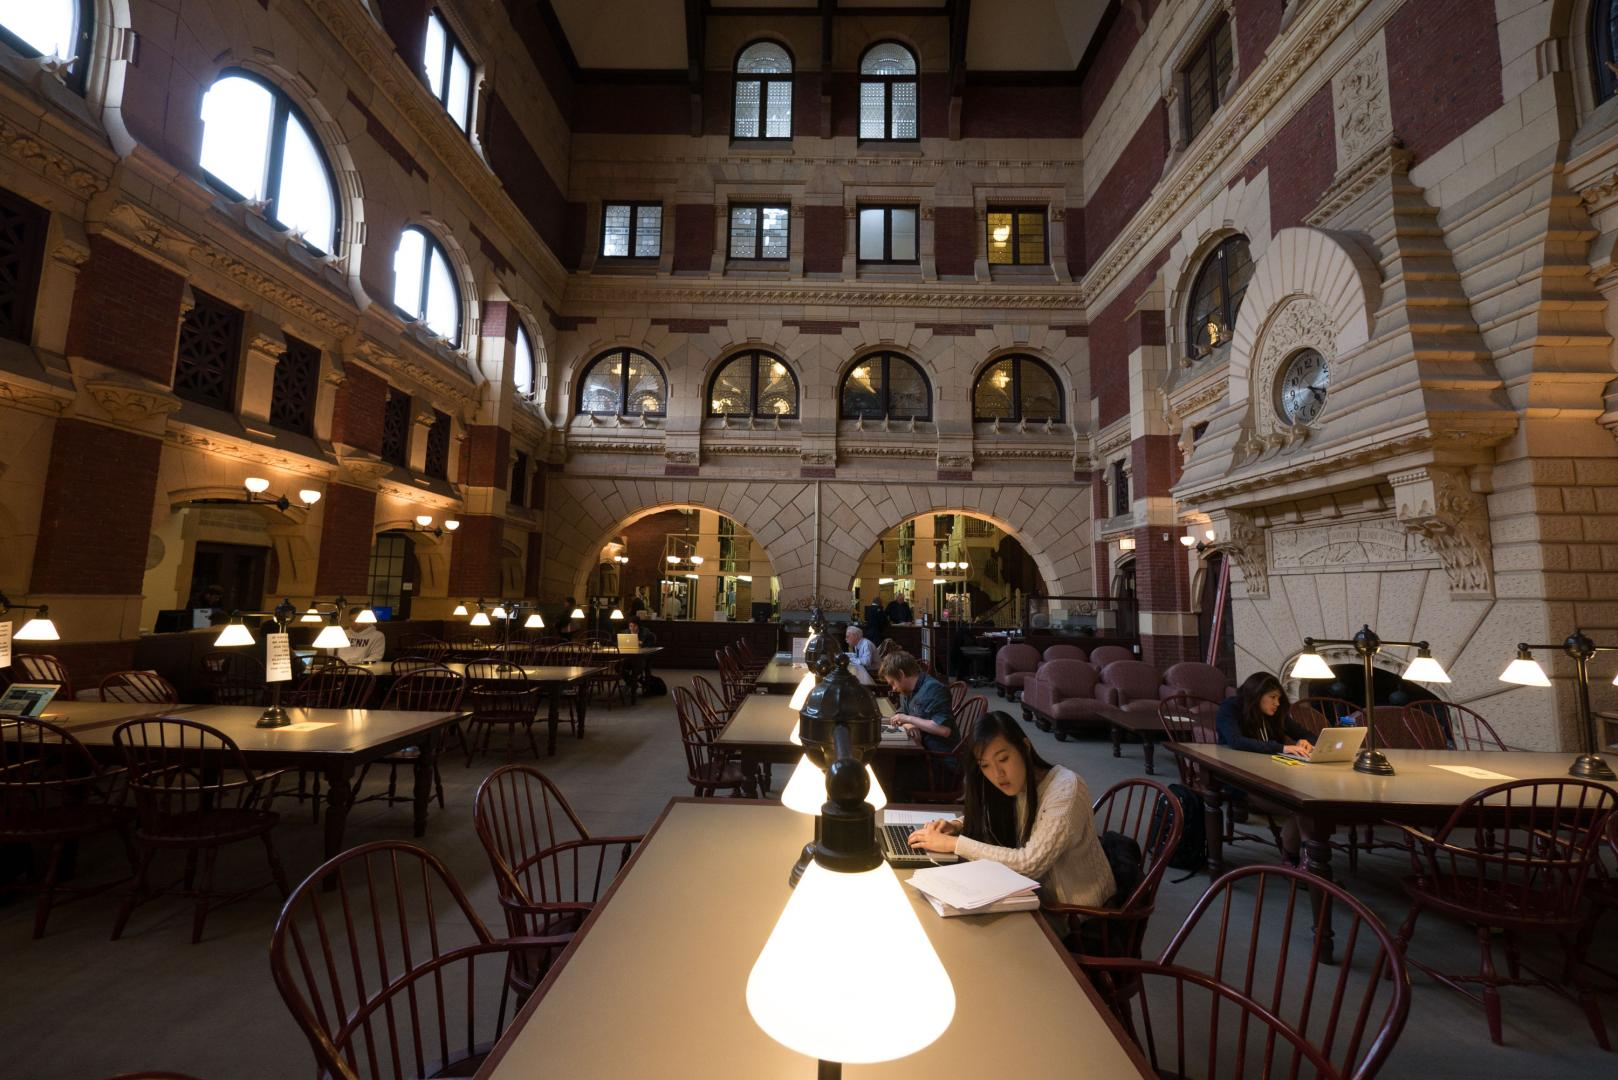 Fisher Fine Arts Library from the inside